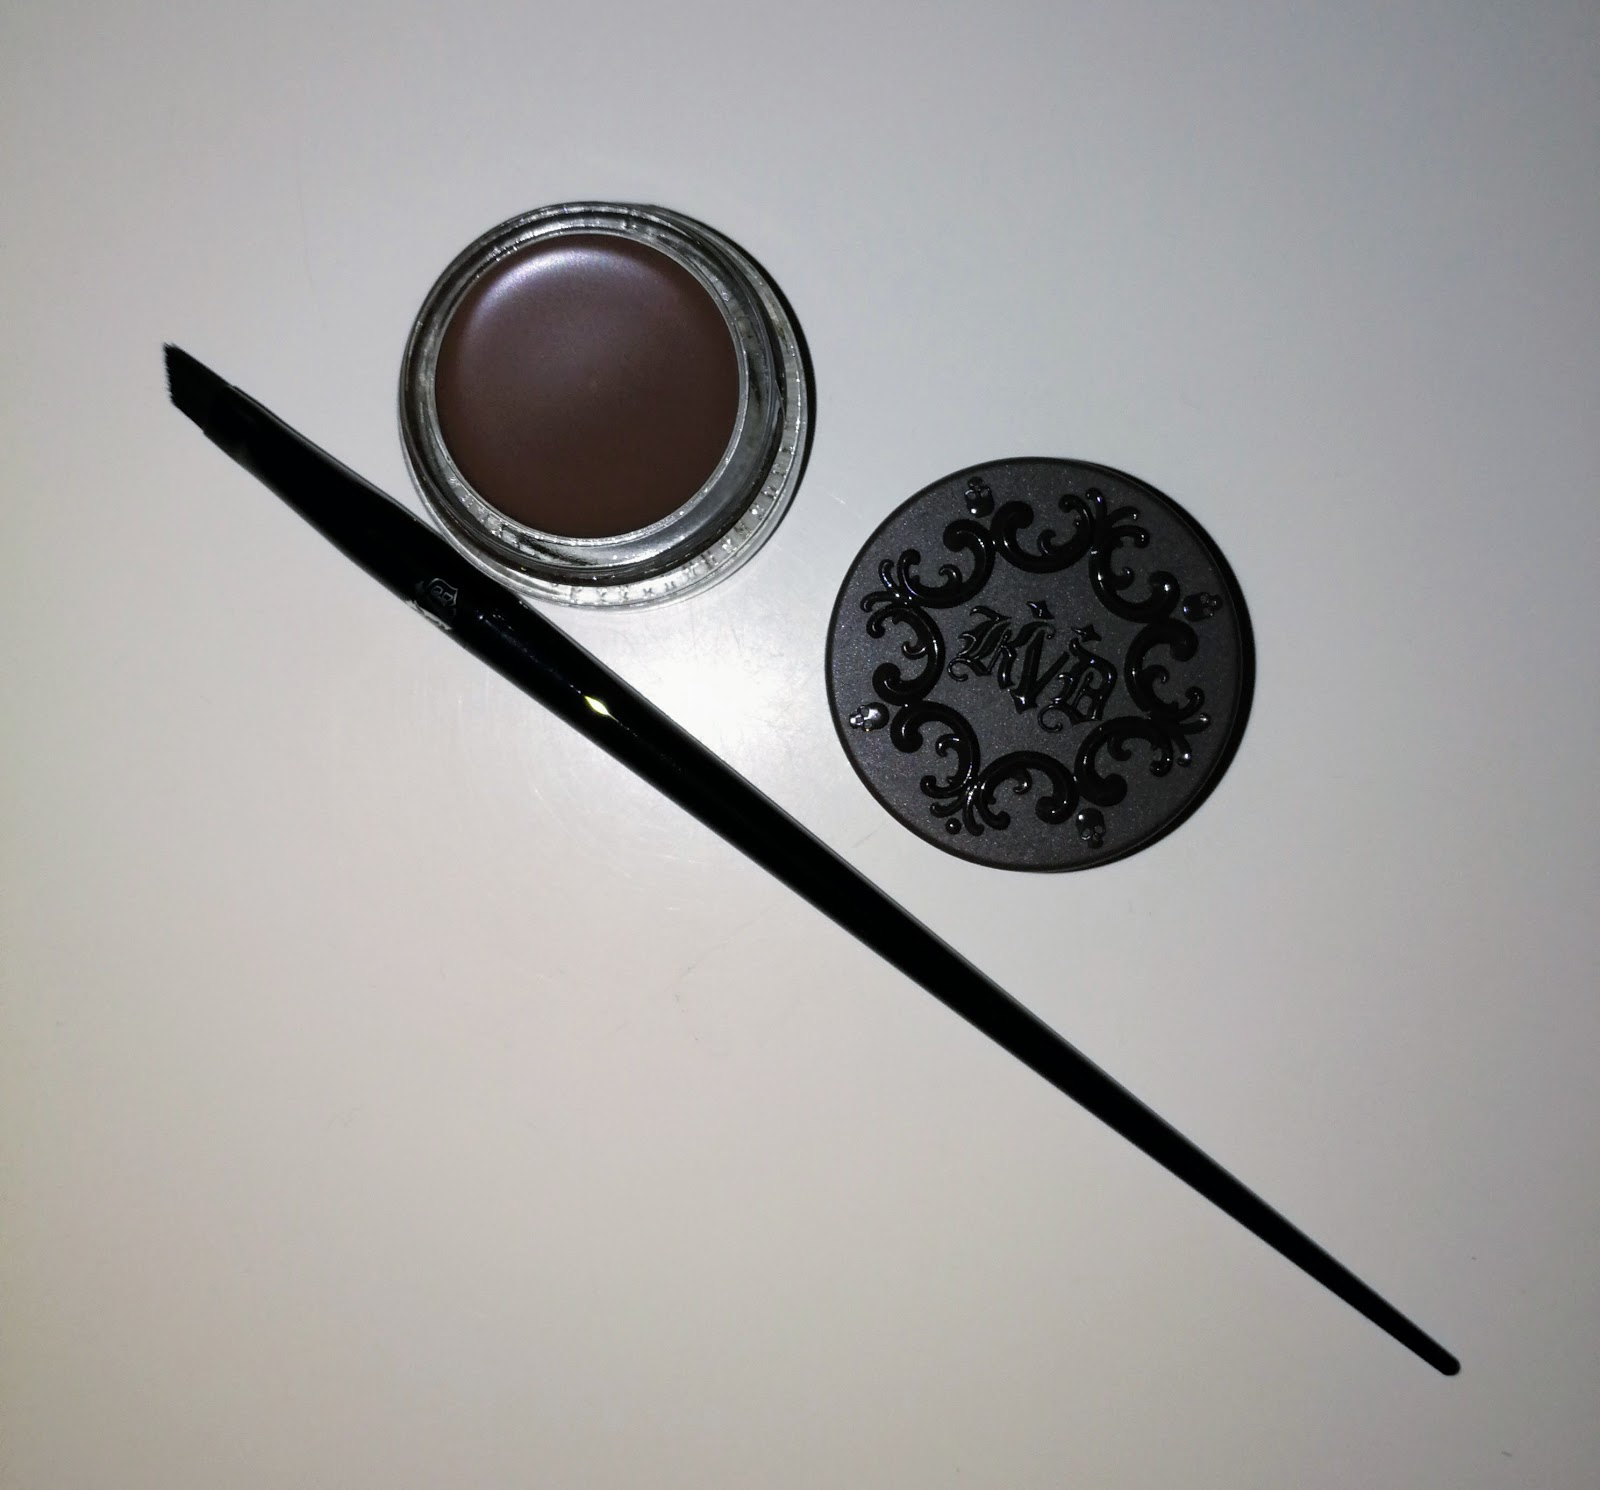 Kat Von D 24-Hour Super Brow Long-Wear Pomade Medium Browm, Kat Von D #70 Pomade Brow Brush